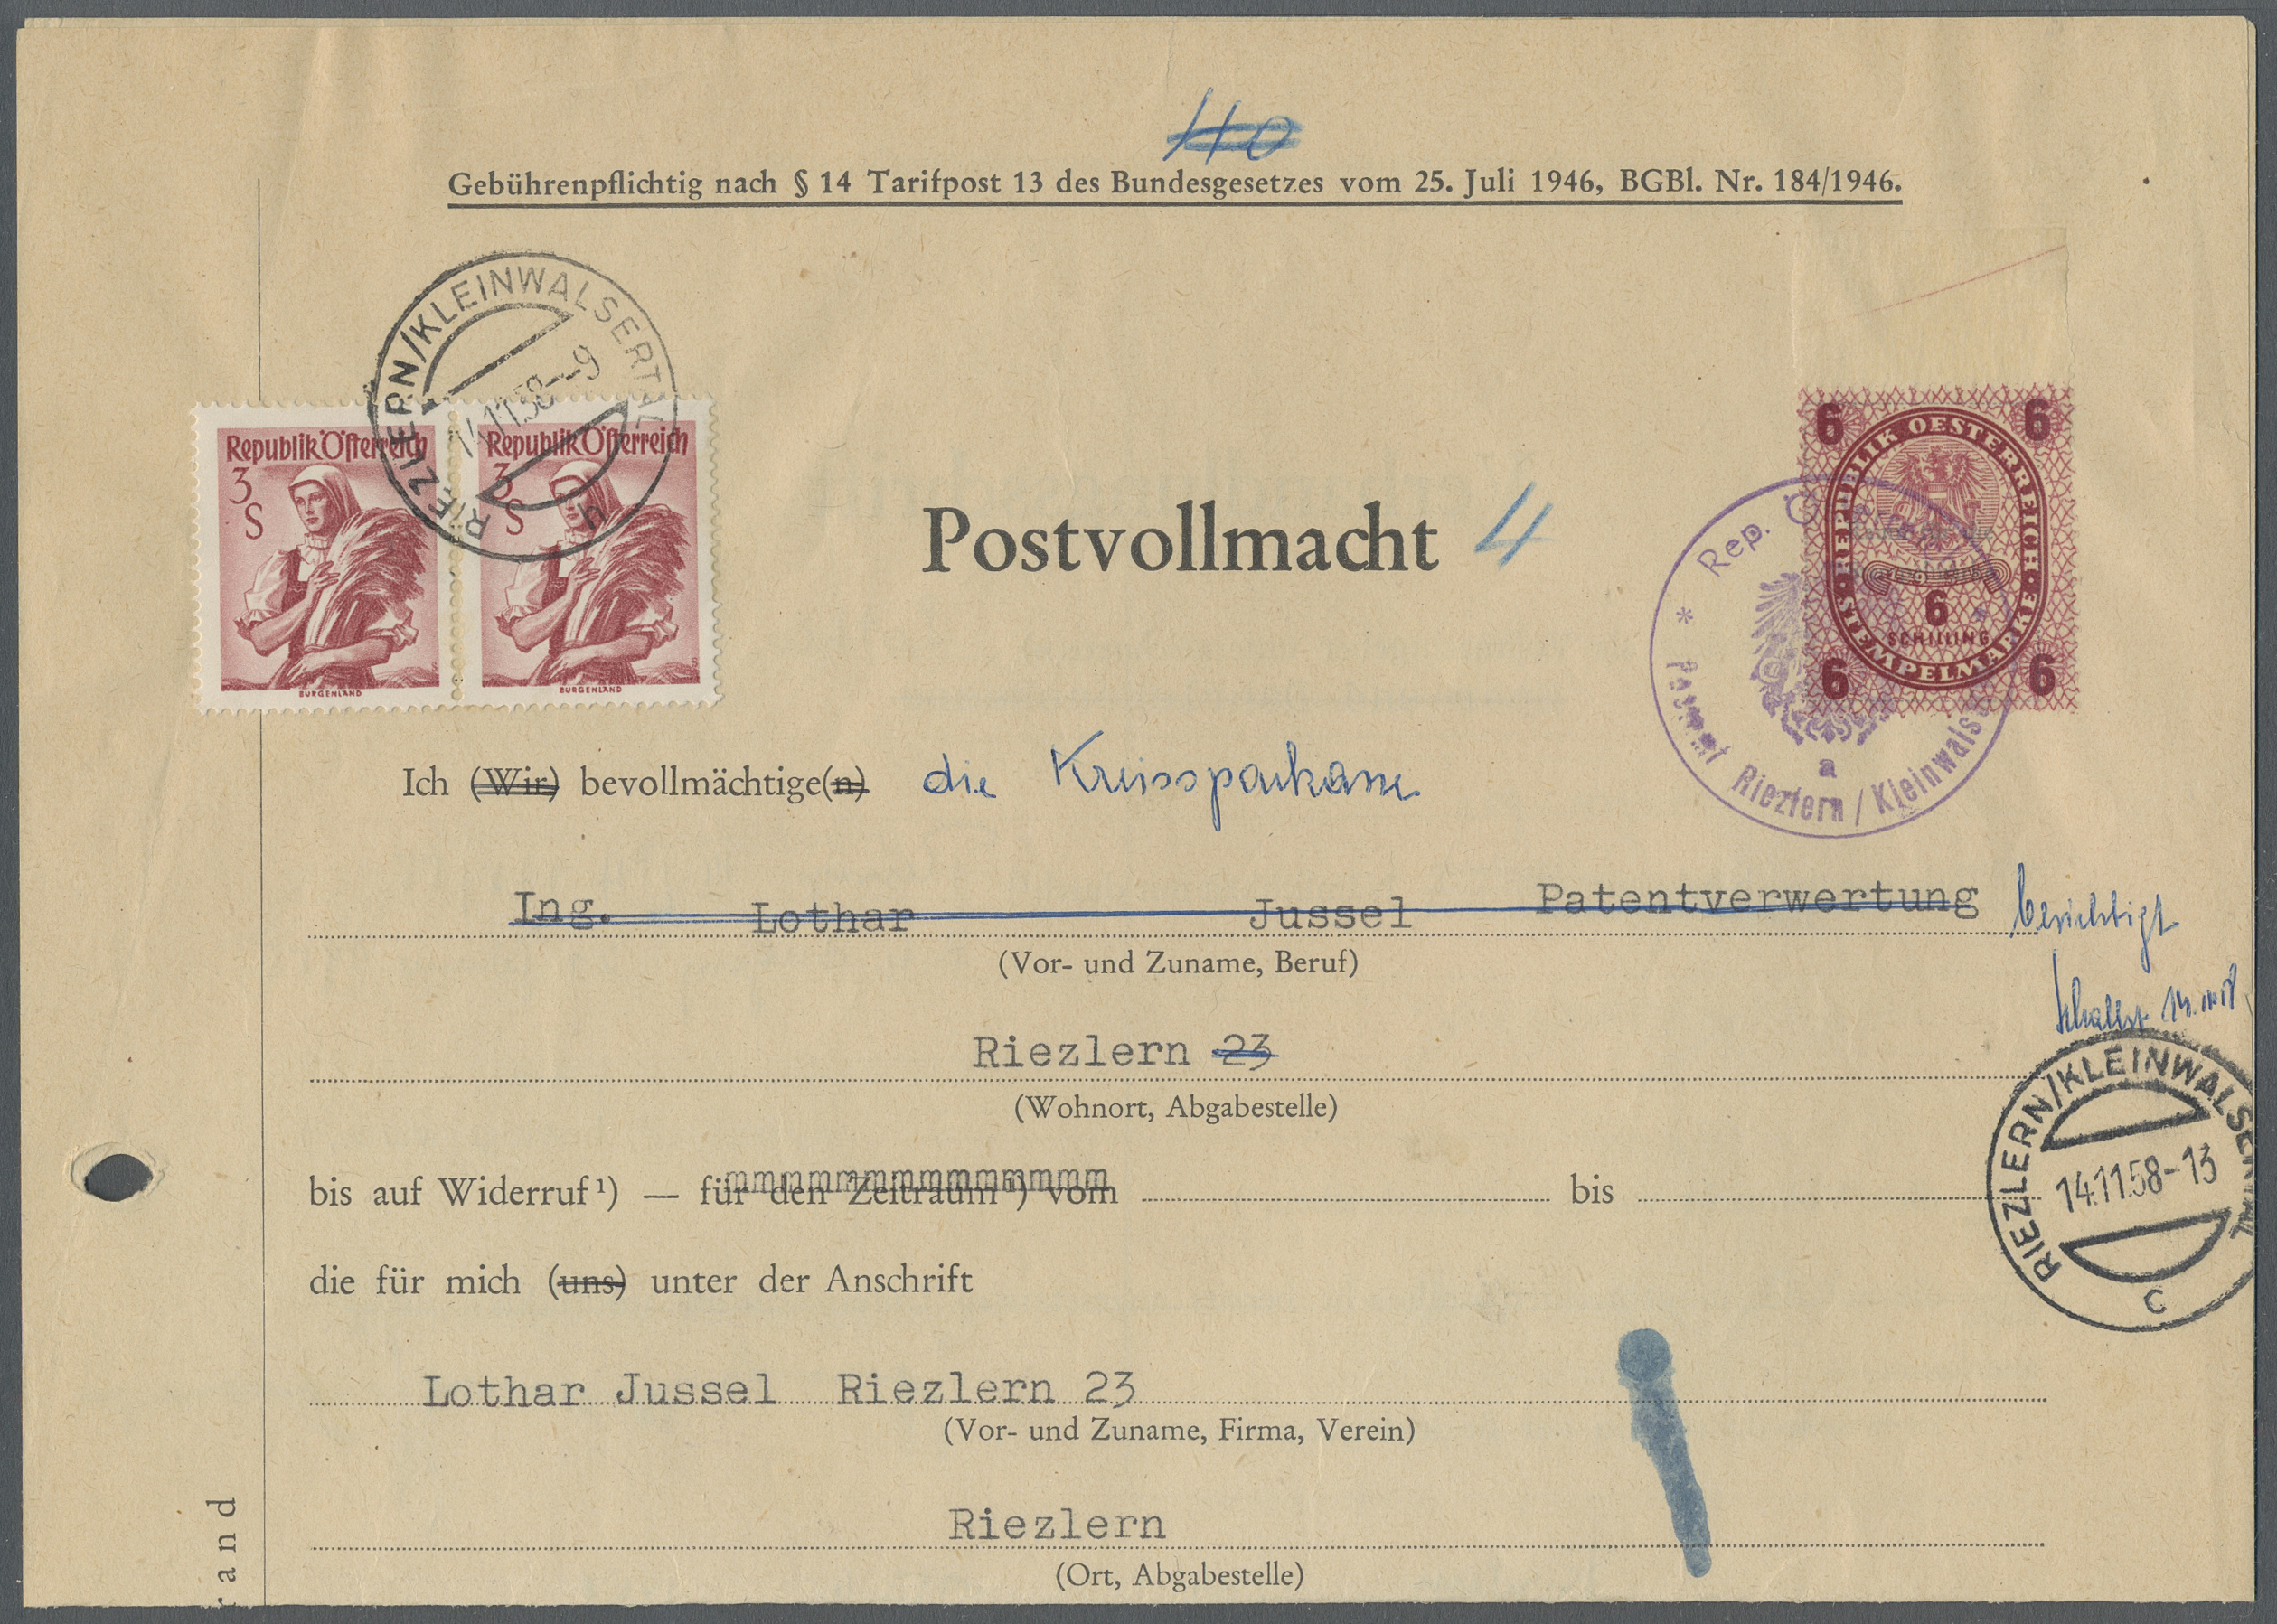 Stamp Auction österreich Sale 43 Germany Europe Day 5 Lot